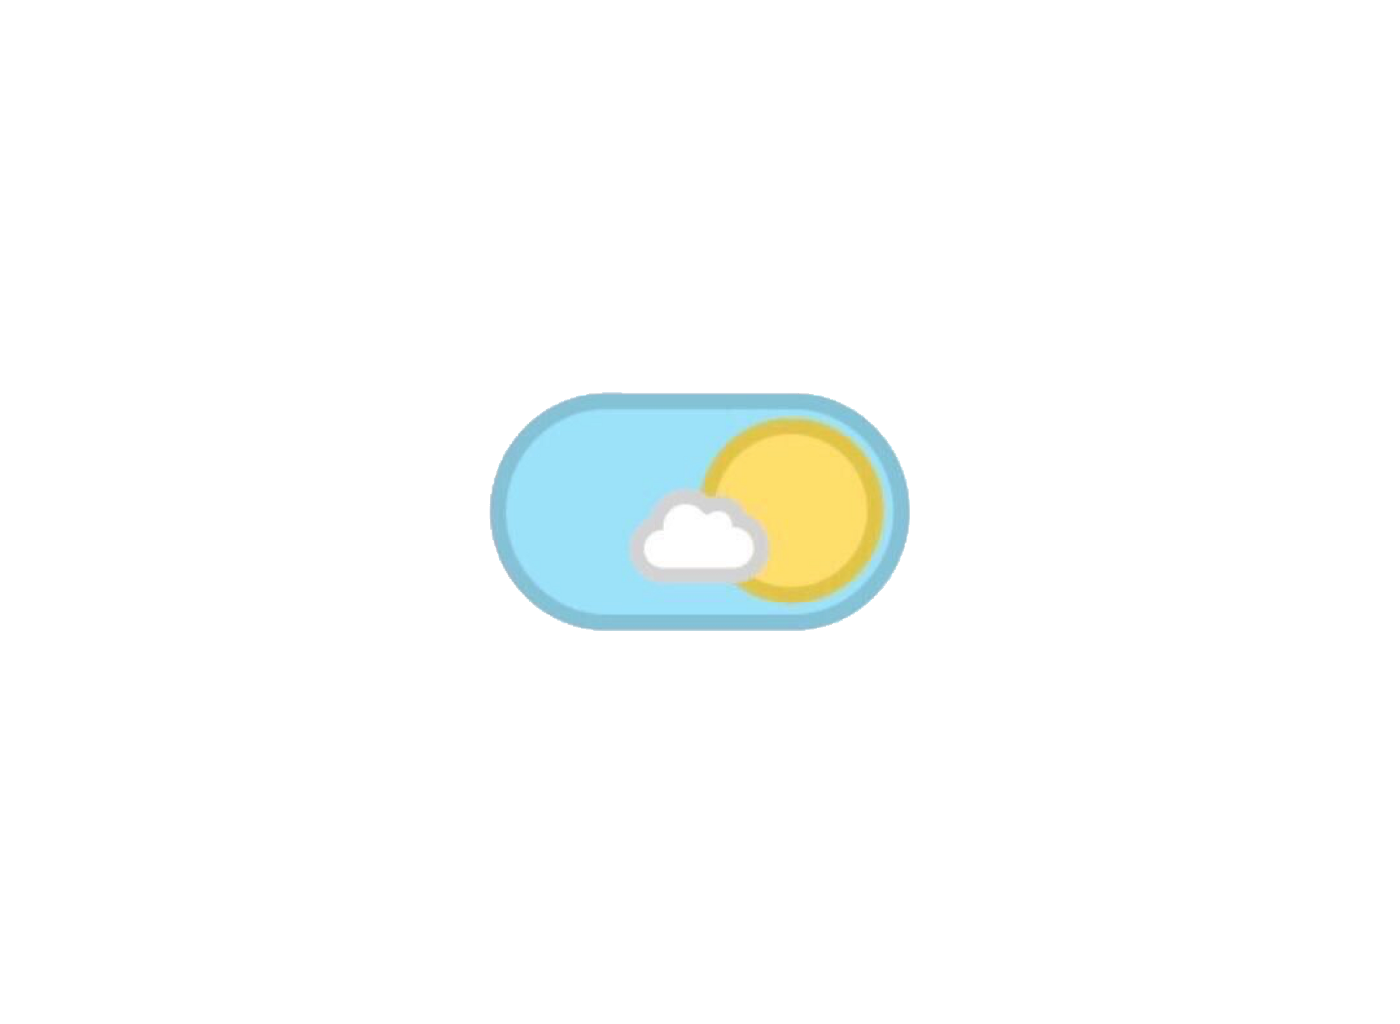 Blue Day Sun Cloud Polyvore Moodboard Filler Yellow Cute Stickers Blue Aesthetic Overlays